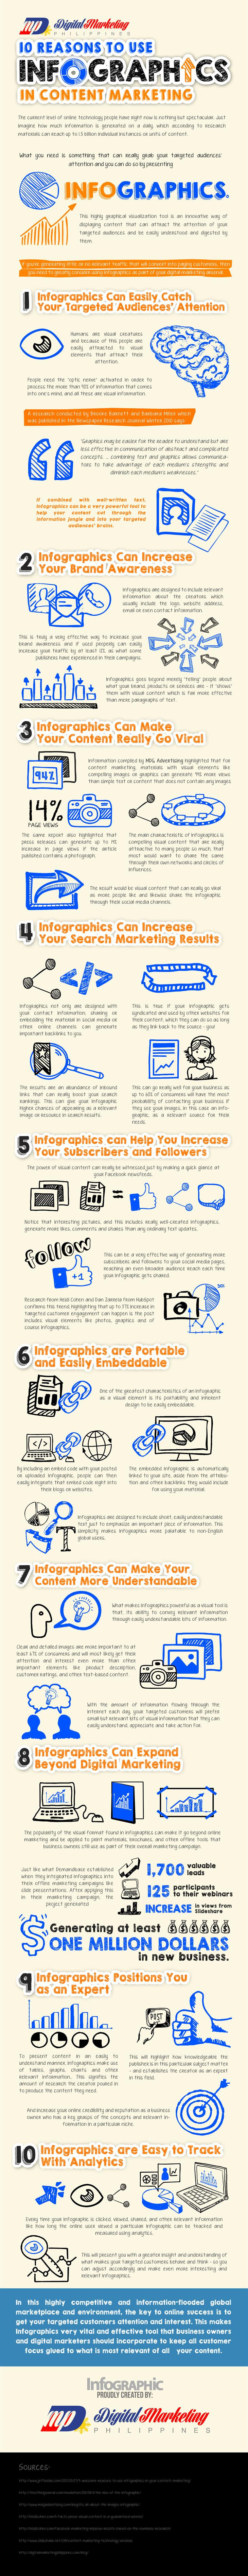 10-Reasons-to-Use-Infographics-in-Content-Marketing